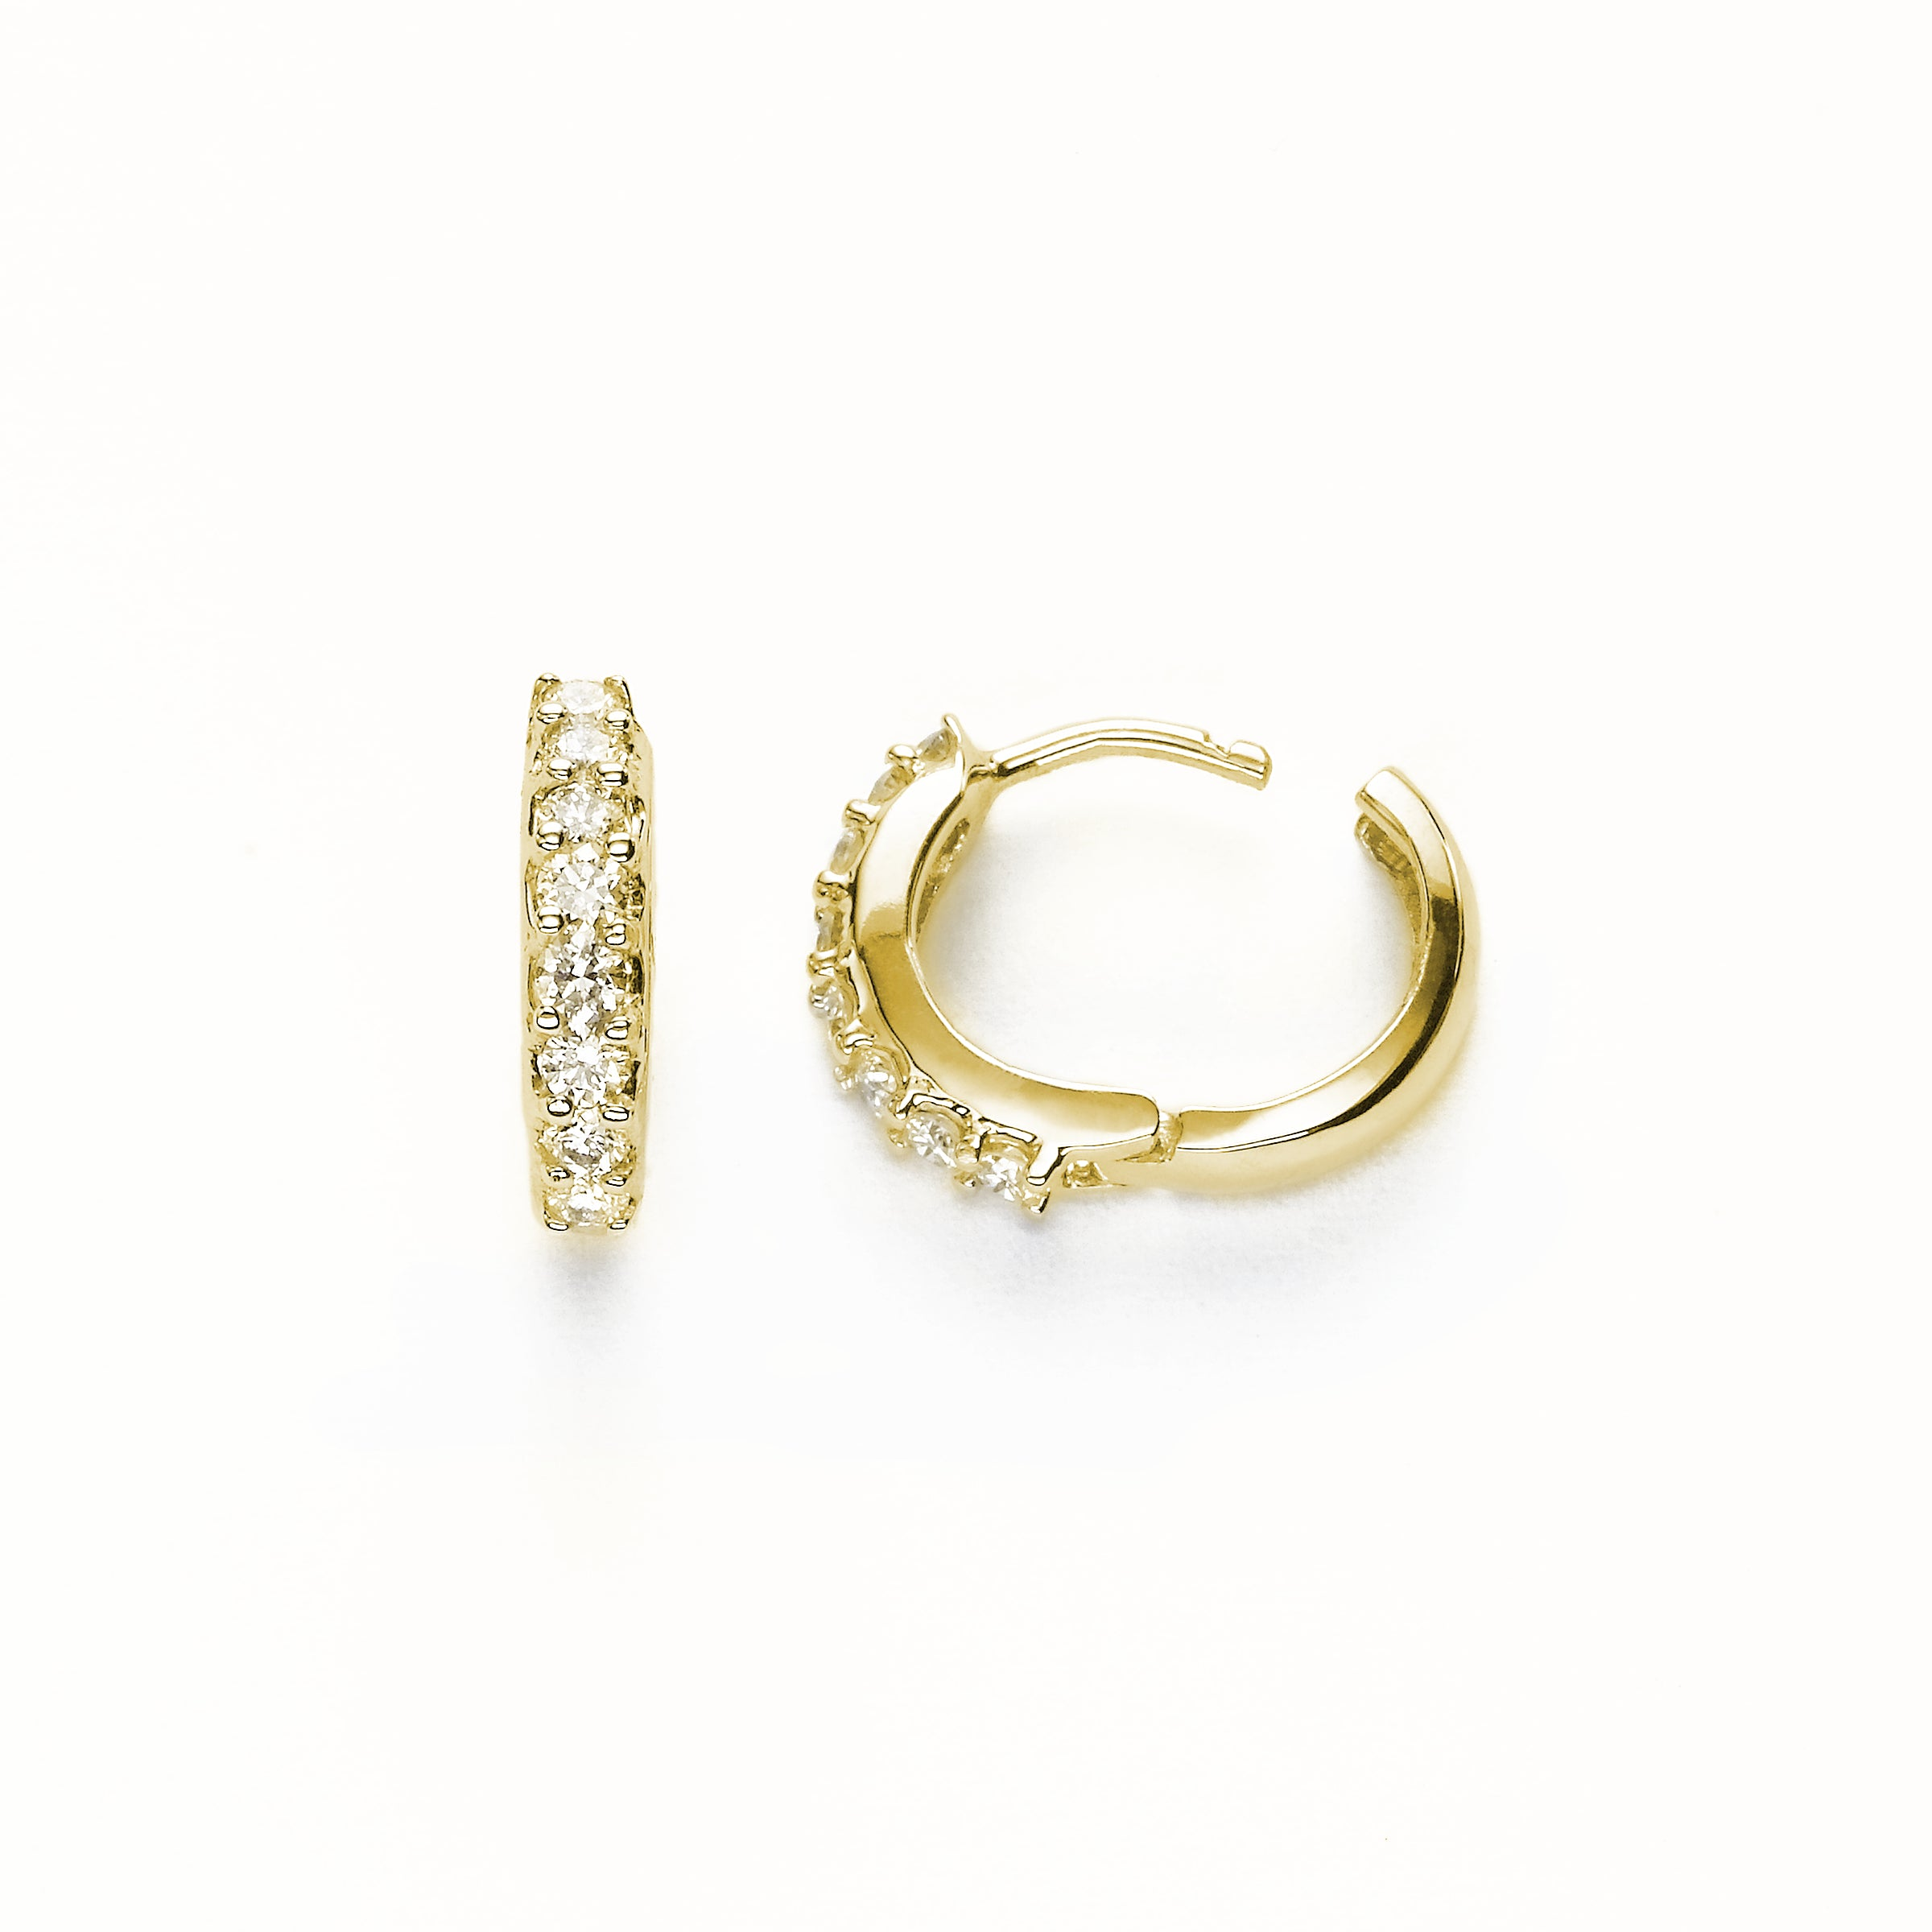 Diamond Huggie Hoop Earrings, .50 Carat, 14K Yellow Gold